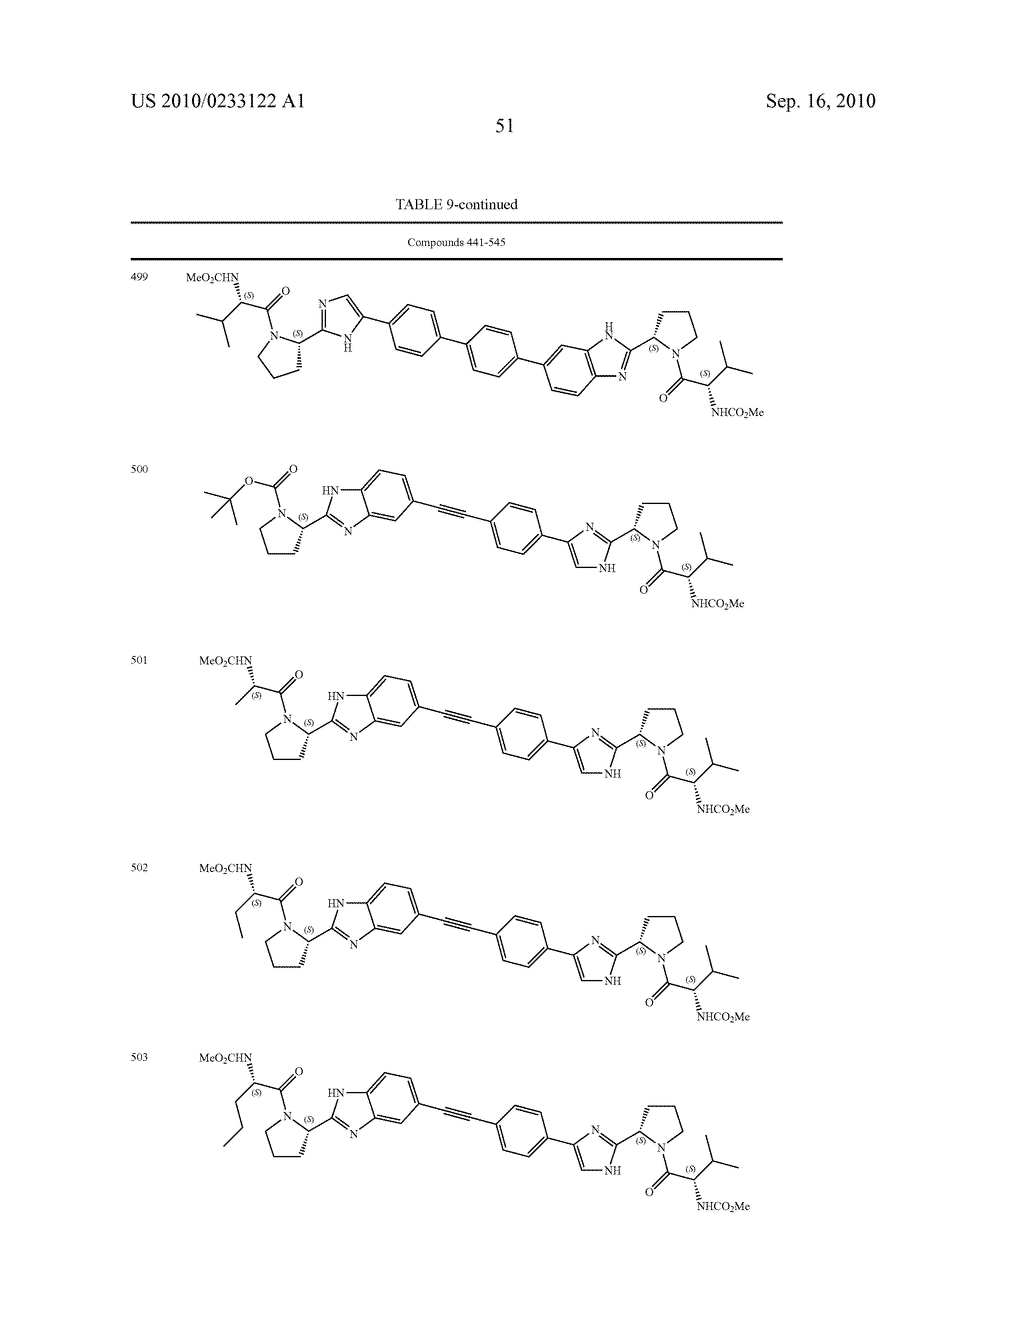 NOVEL BENZIMIDAZOLE DERIVATIVES - diagram, schematic, and image 52